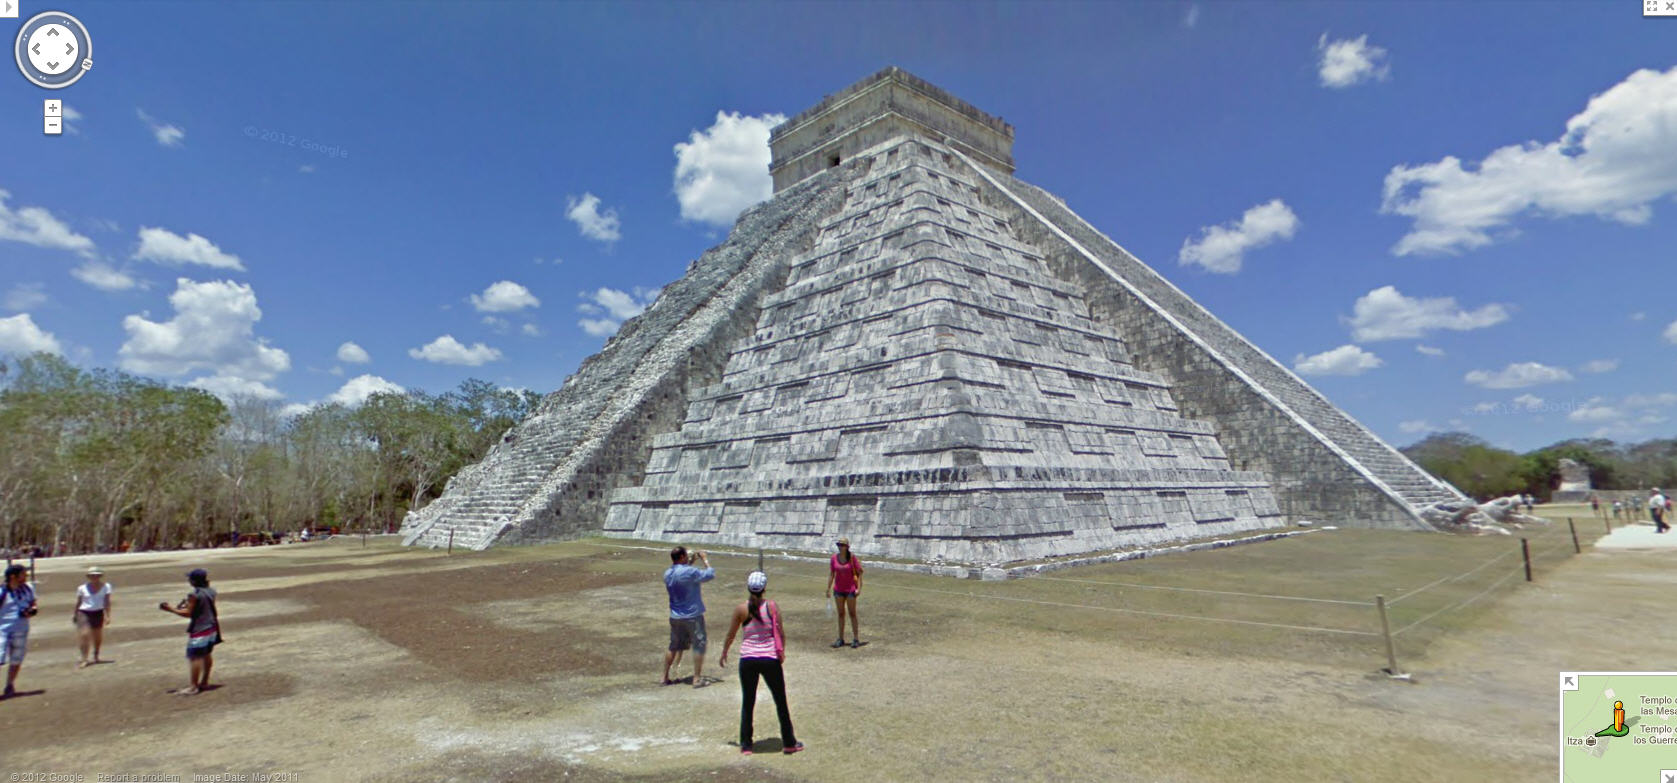 The Temples at Chichen Itza Never Looked Better - Nice Work ... on germany on world map, oaxaca world map, ancient thebes world map, great wall of china world map, chan chan world map, tikal world map, palace of versailles world map, potala palace world map, oak island world map, pyramid of the moon world map, leaning tower of pisa world map, iguazu falls world map, tampico world map, tulum world map, mexico world map, mazatlan world map, chiapas world map, neuschwanstein castle world map, ouro preto world map, xel ha world map,